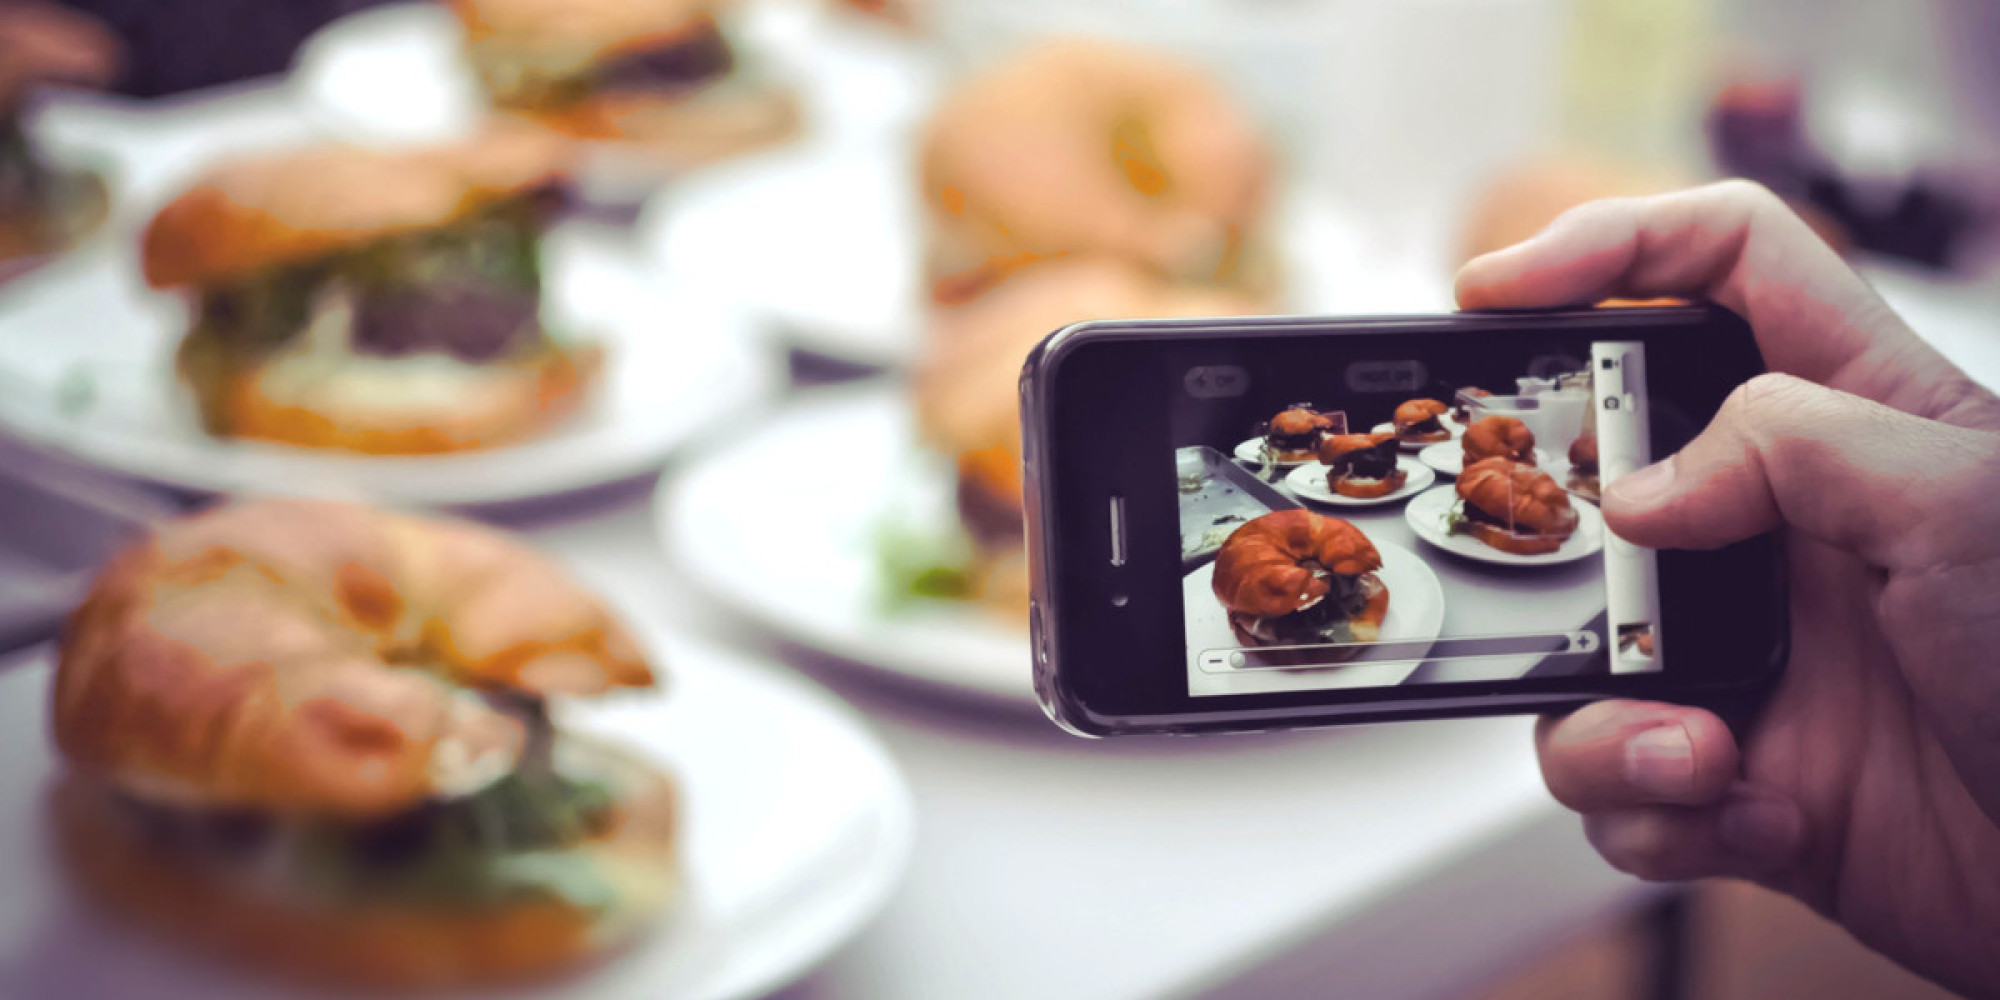 The foodie instagram spammer food and drink pr the rise of the foodie instagram spammer forumfinder Choice Image